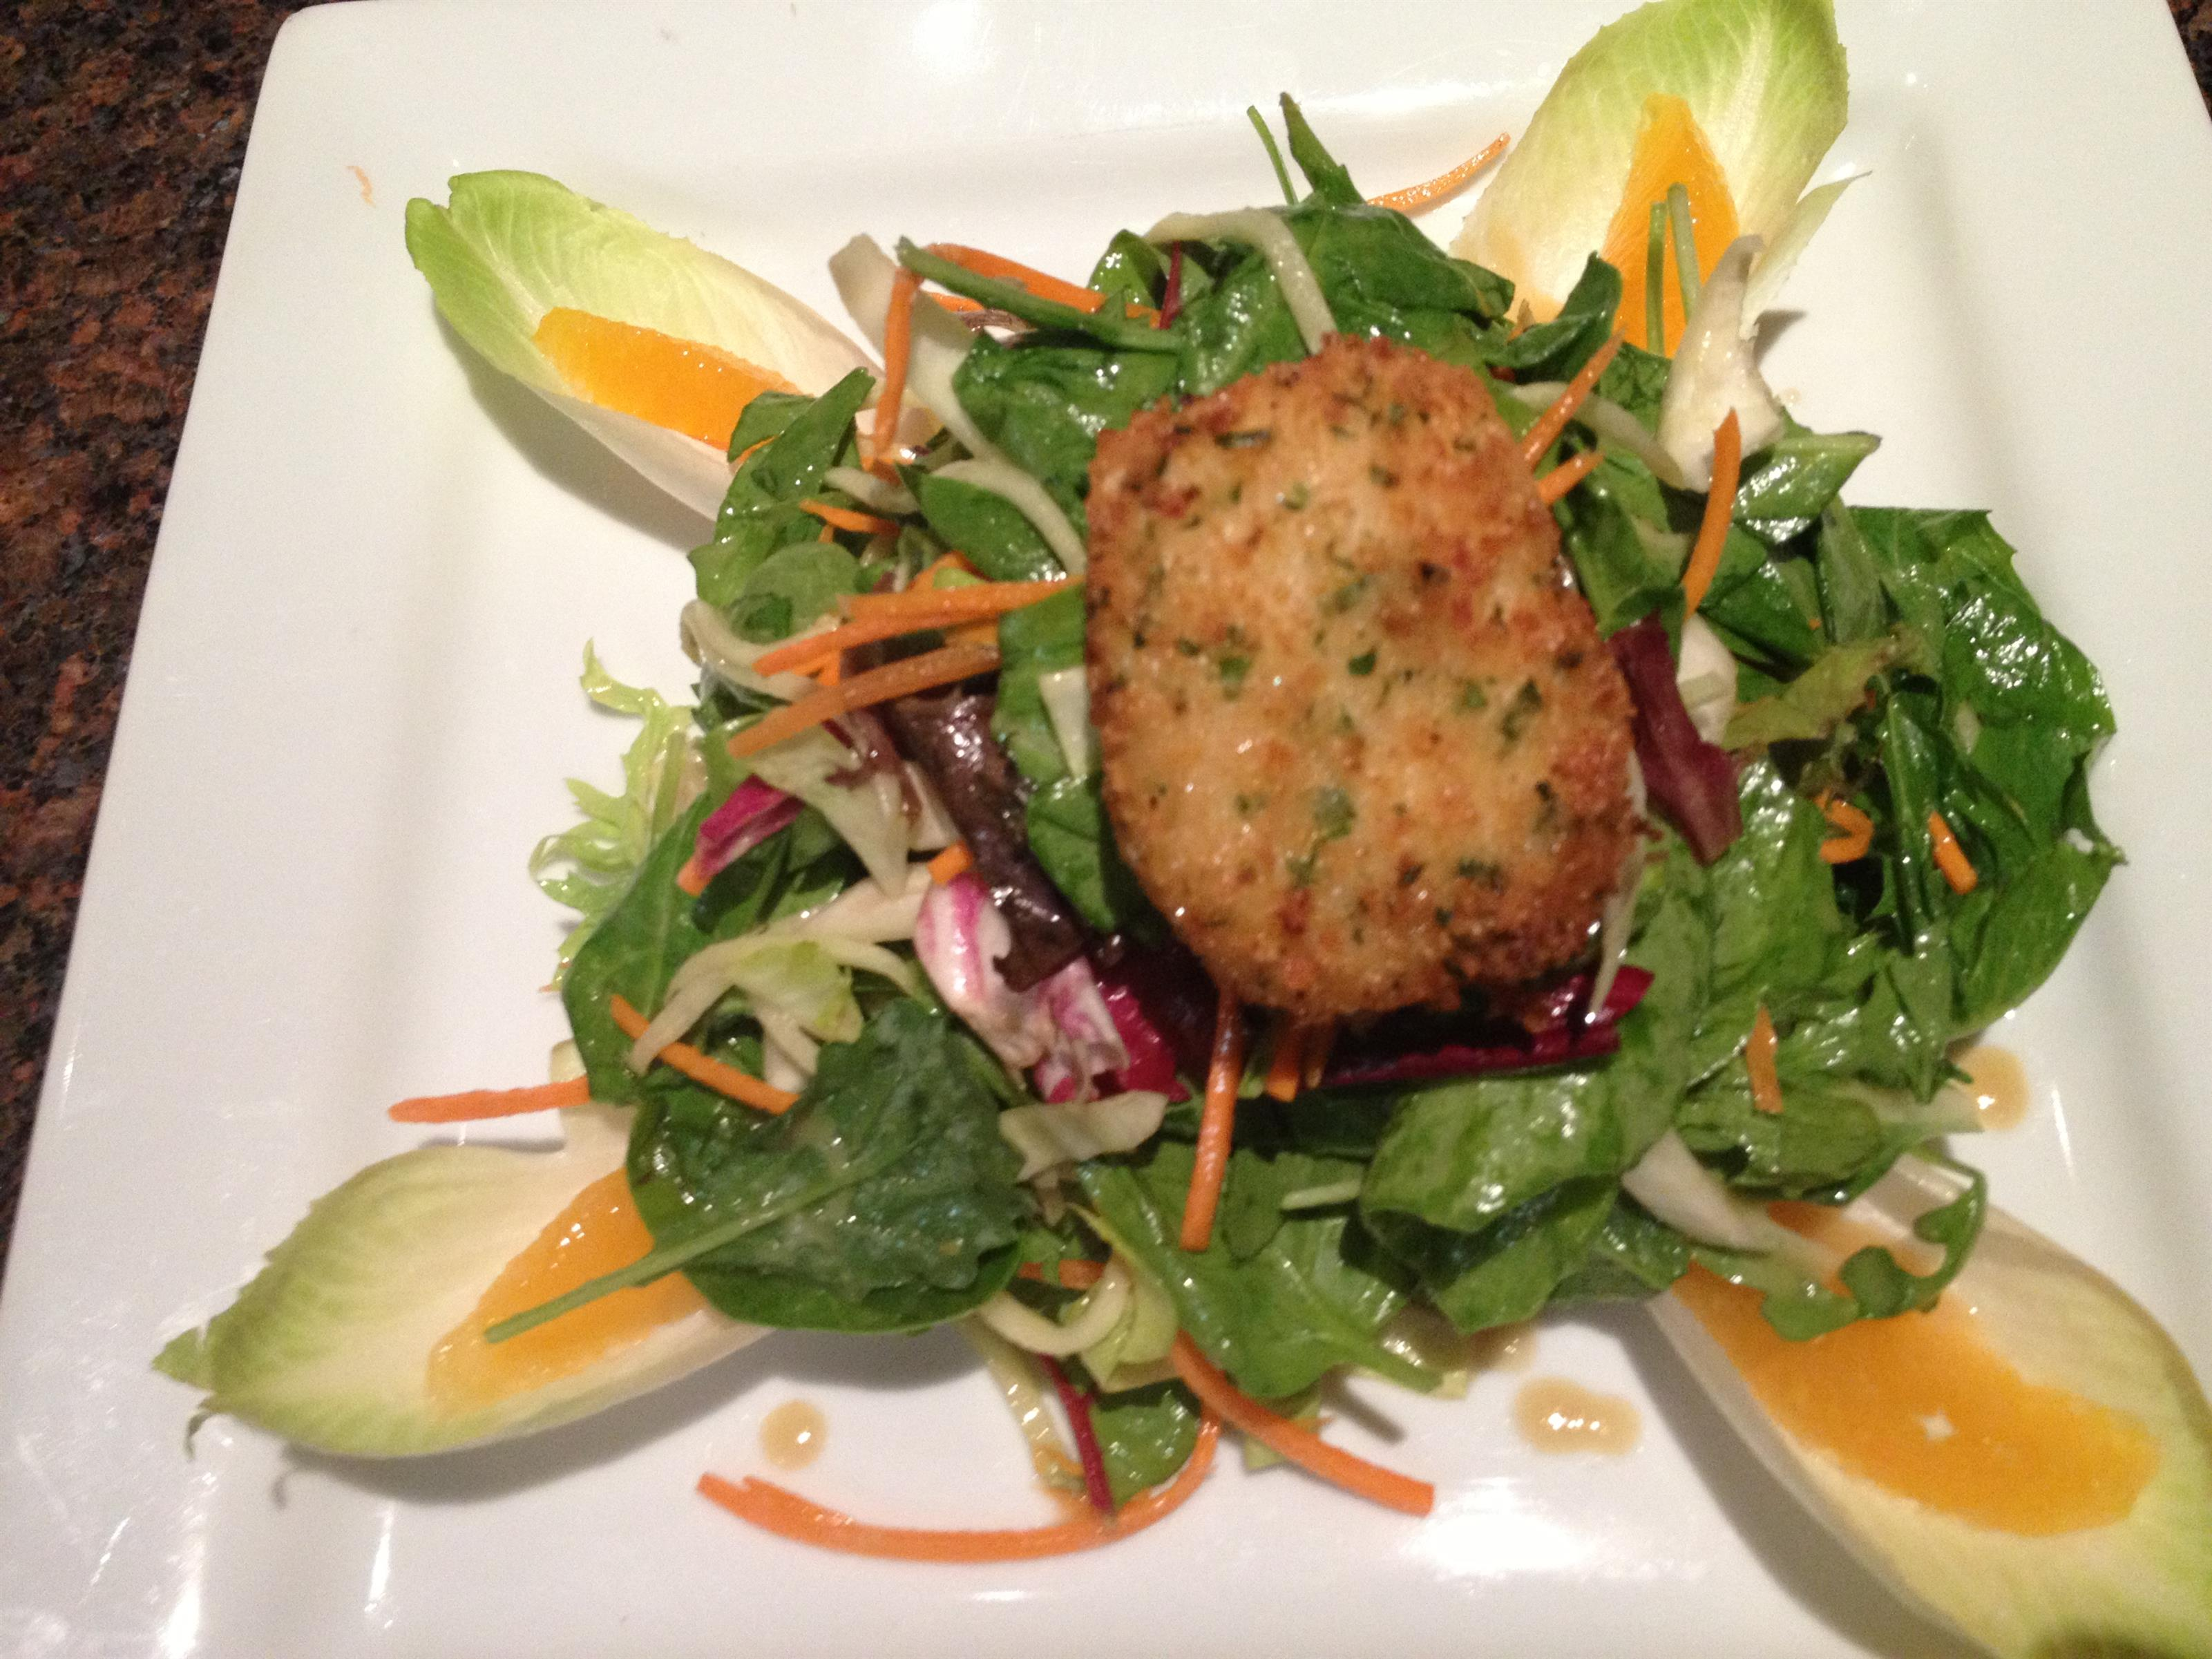 Crispy goat cheese salad